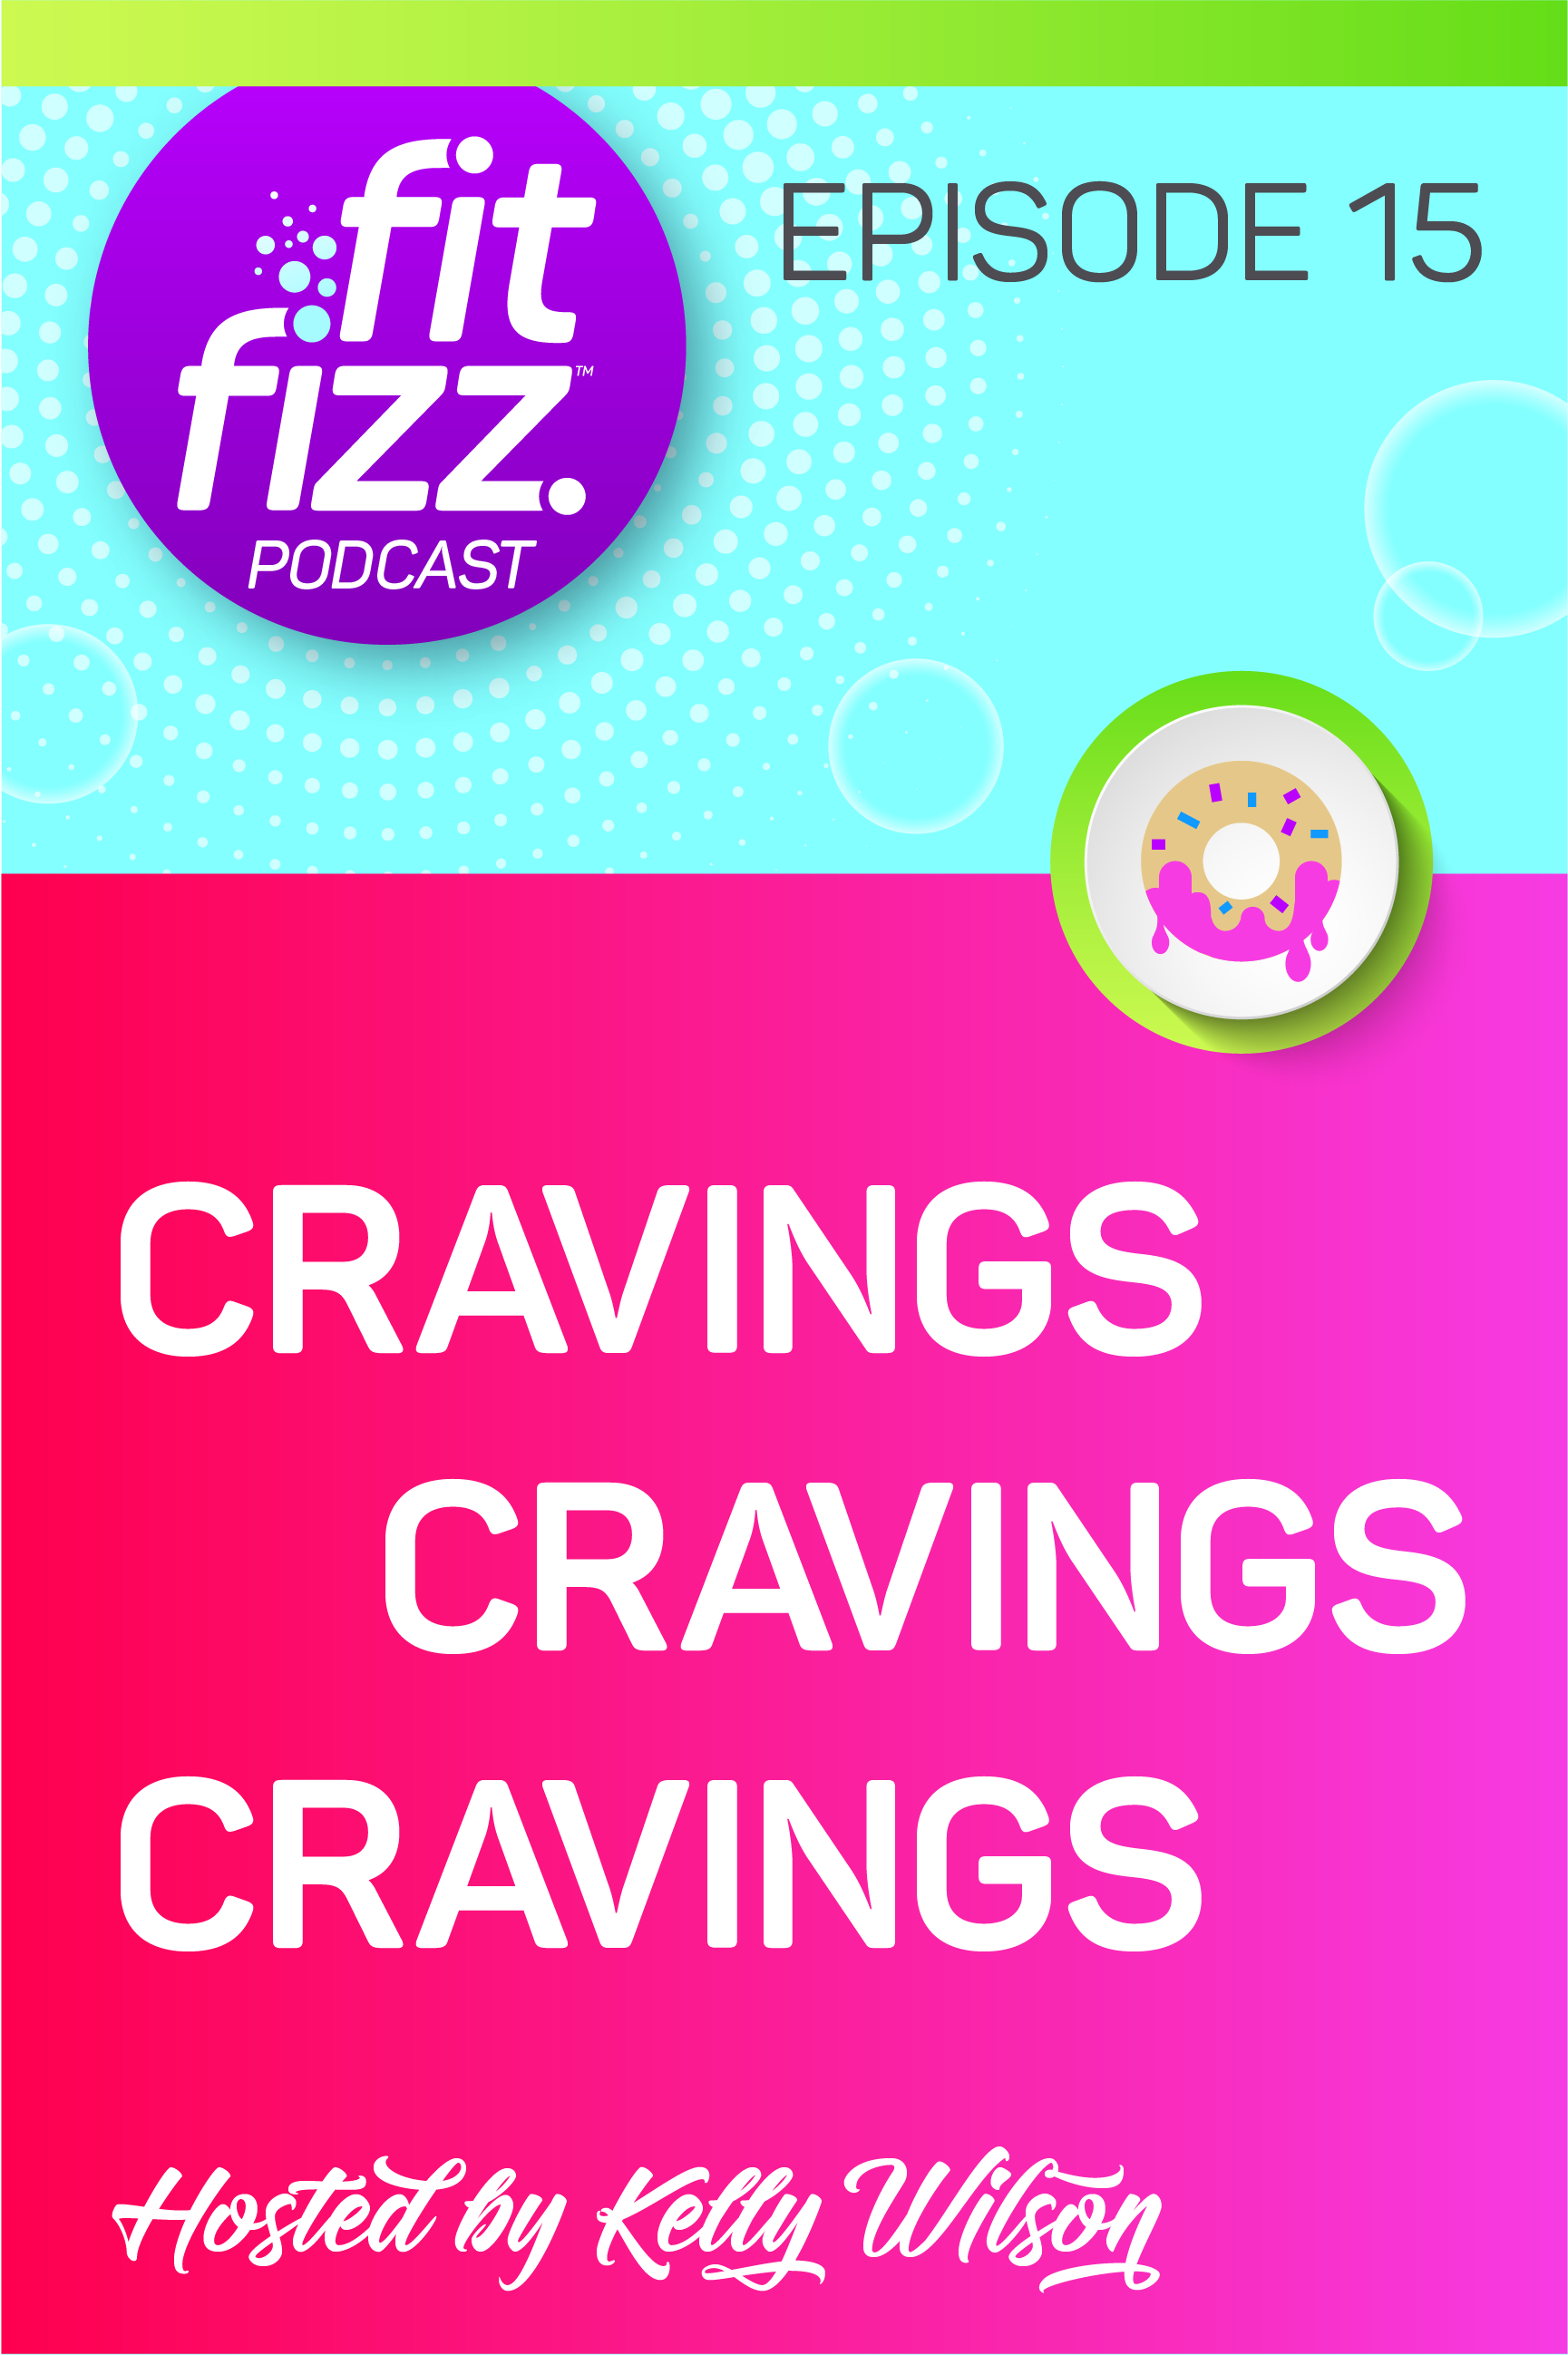 Whatever you crave, I\'m going to explain a bit about why we get cravings. It\'s not random. I\'m arming you with knowledge so that the next time a craving strikes you can feel more in control and not let it have full power over you.